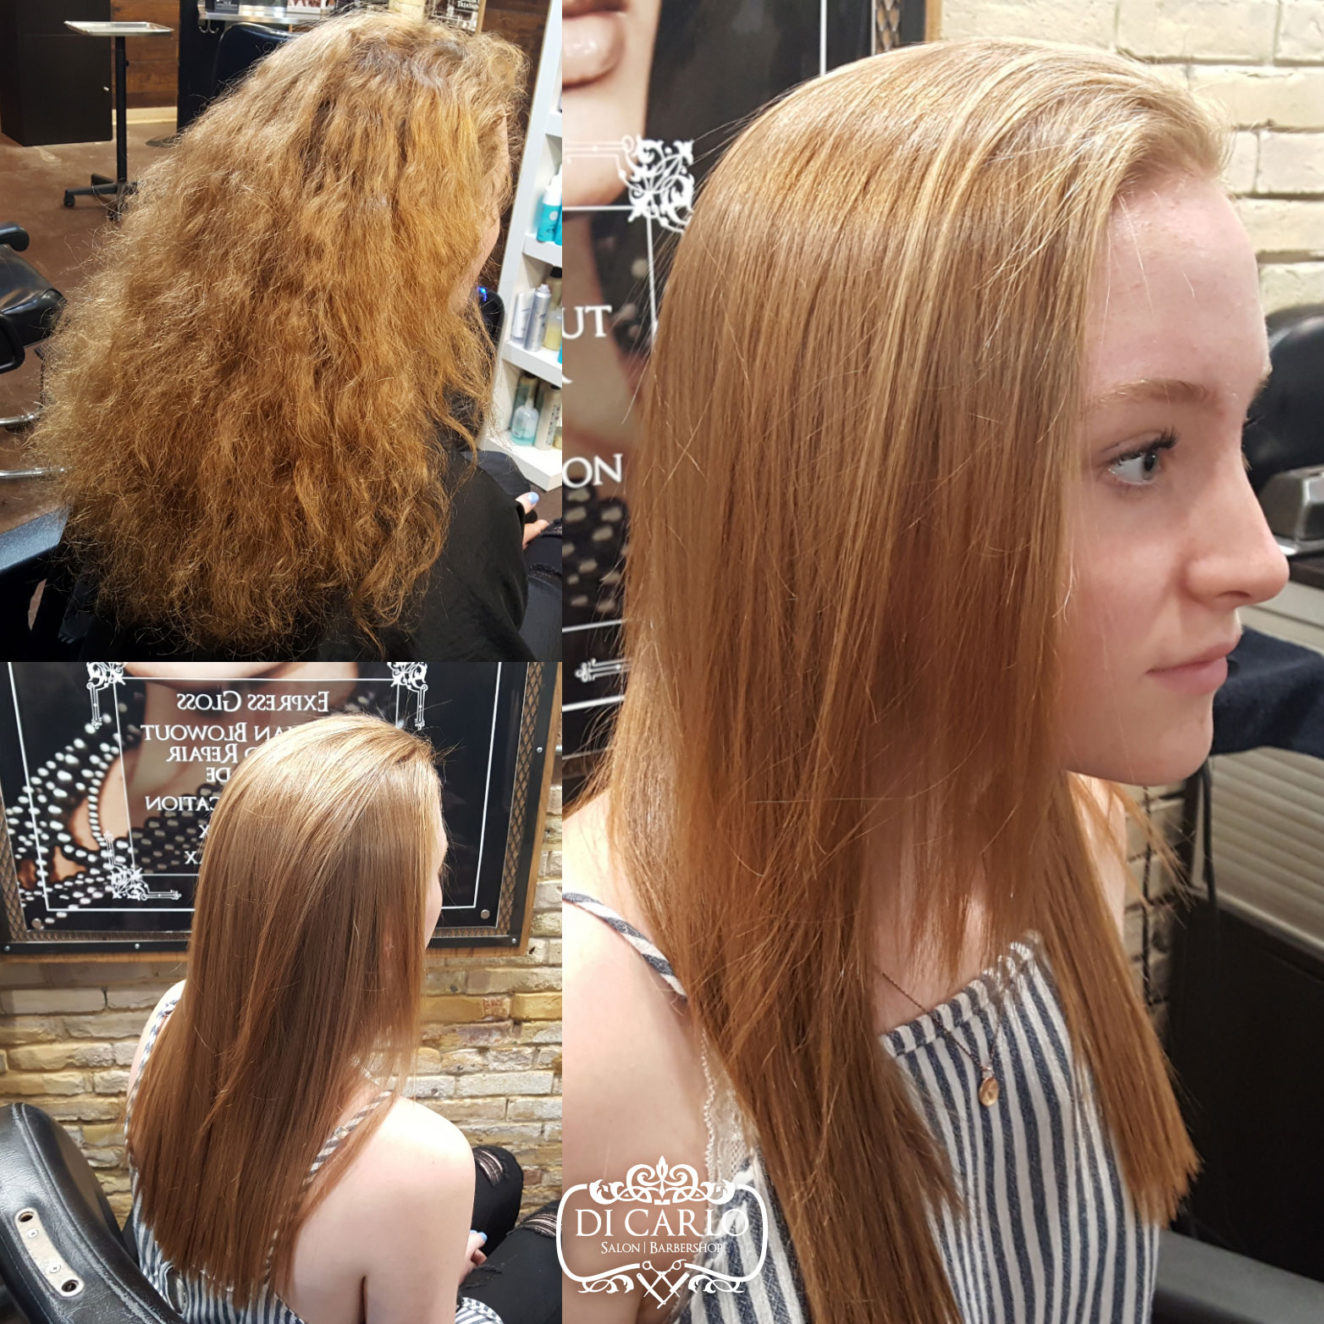 Brazilian Blowout Hair Smoothing Treatments Downtown